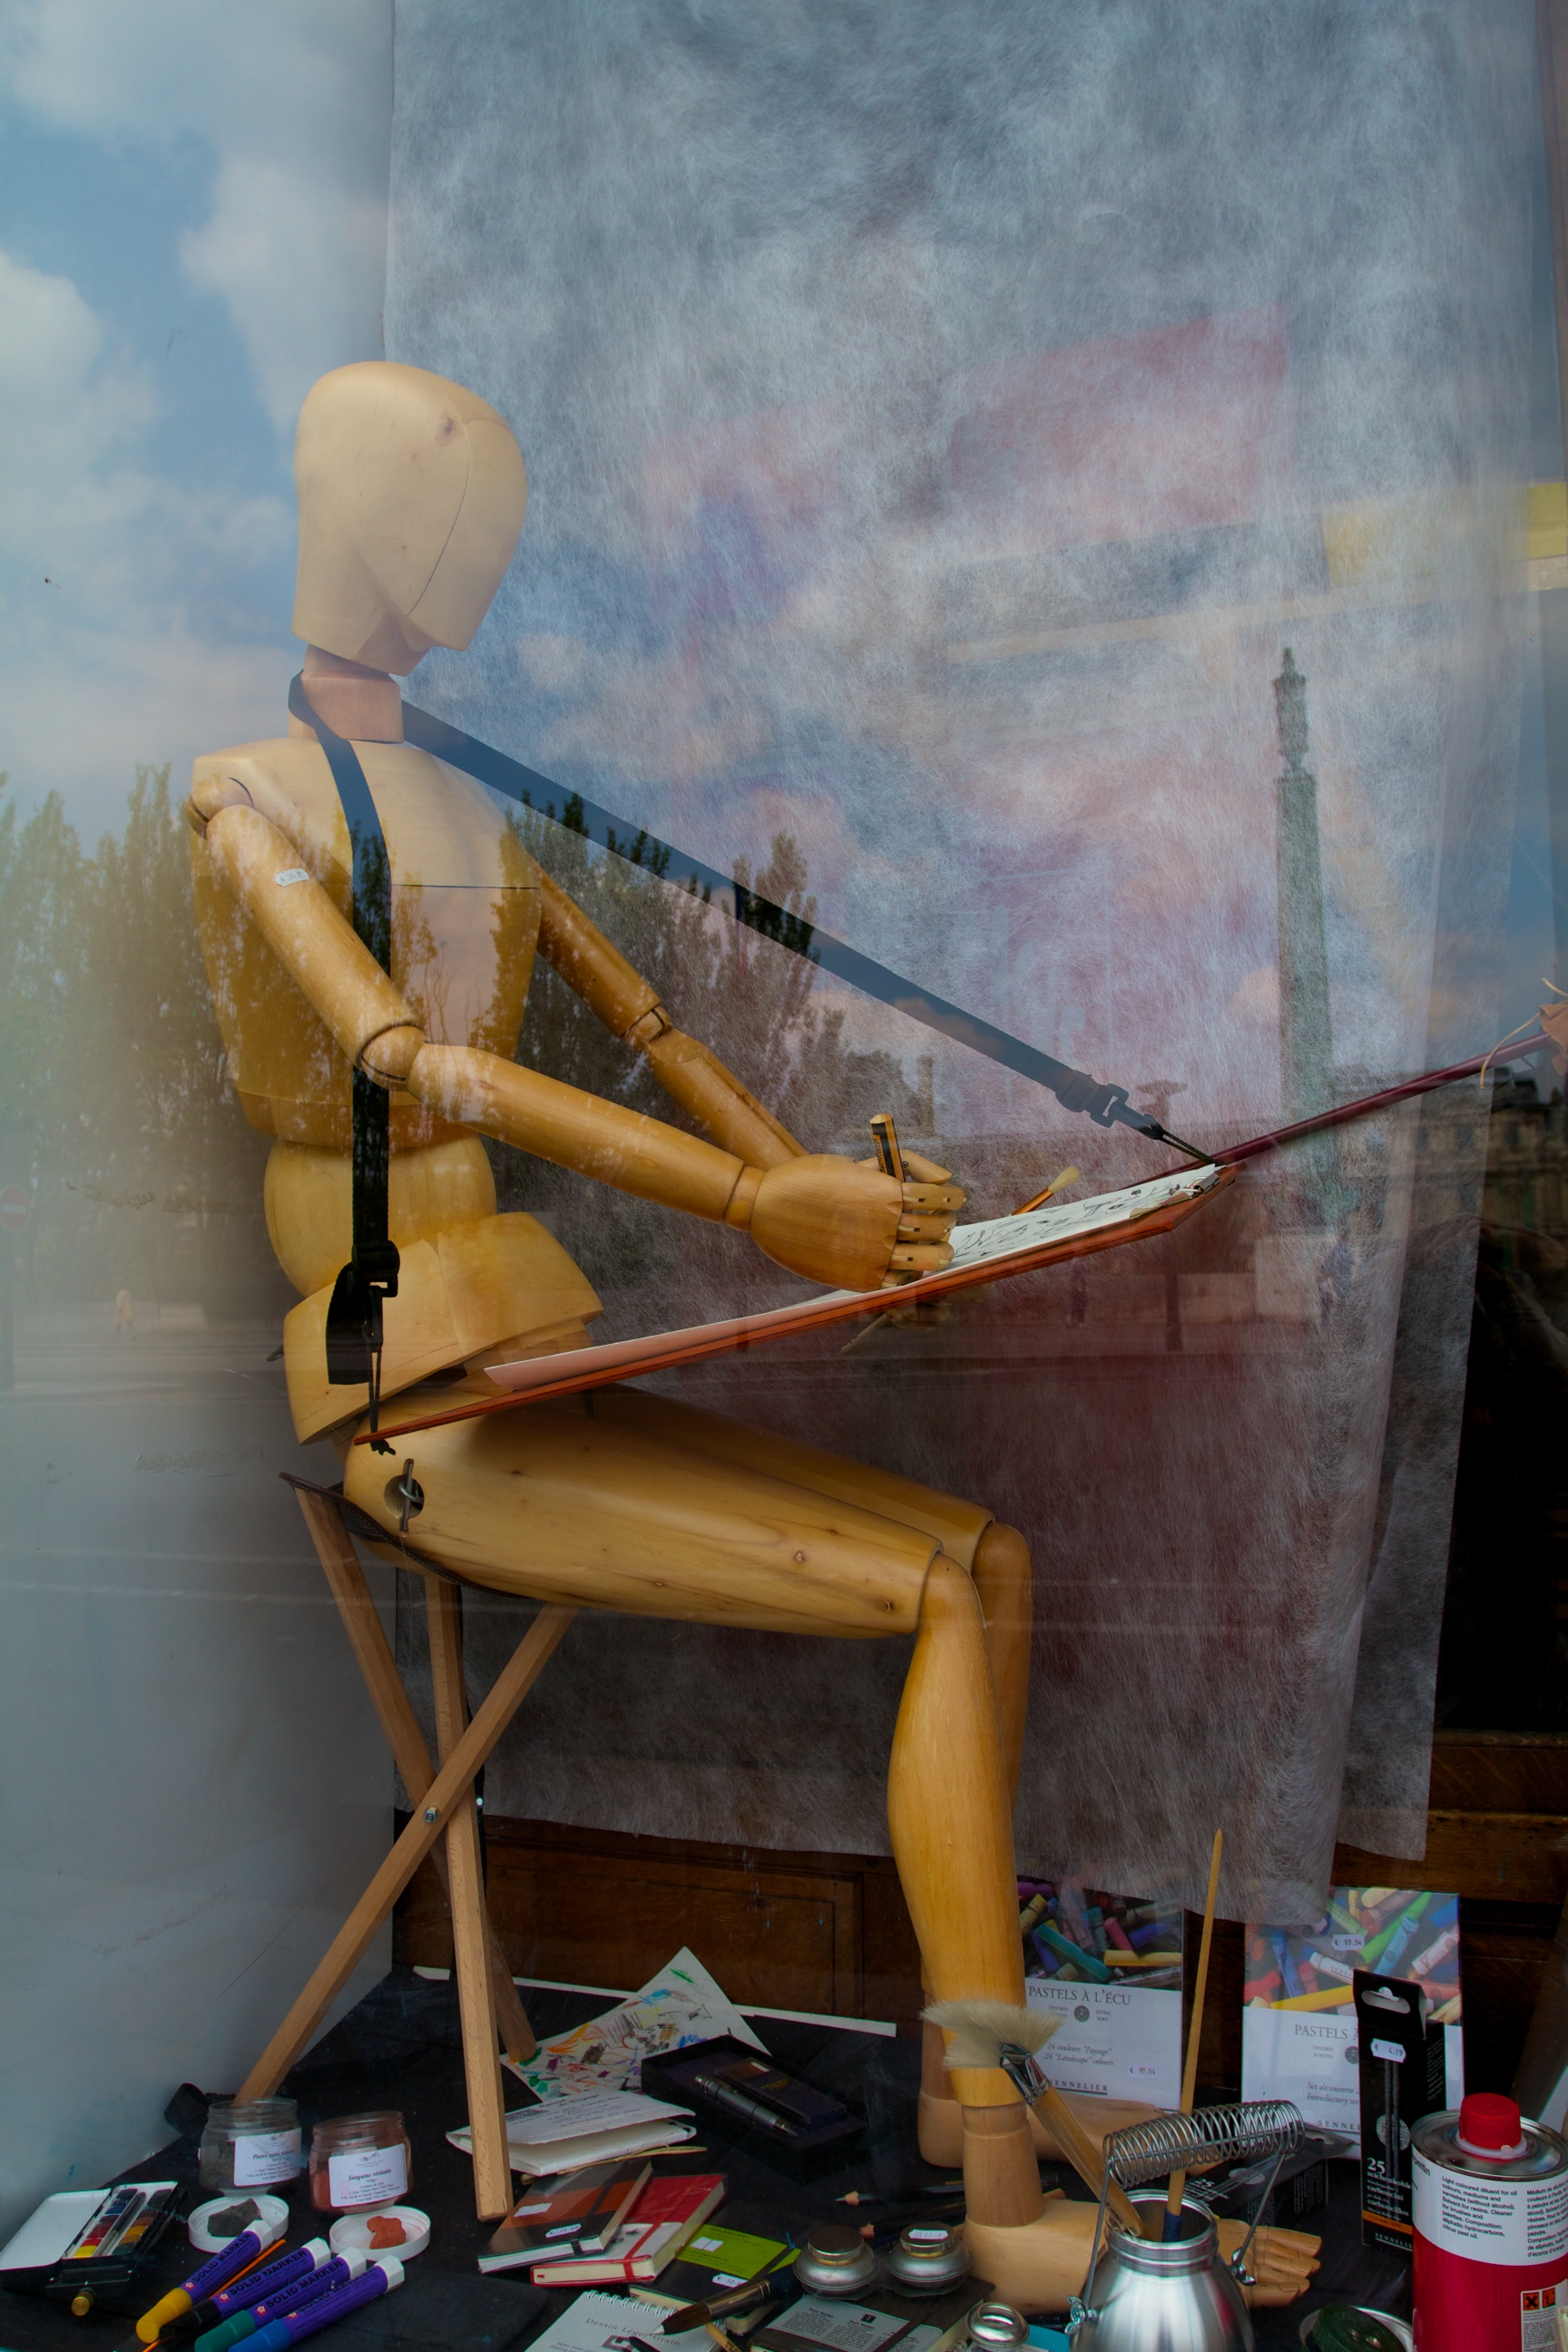 wooden artists mannequin in a shop window